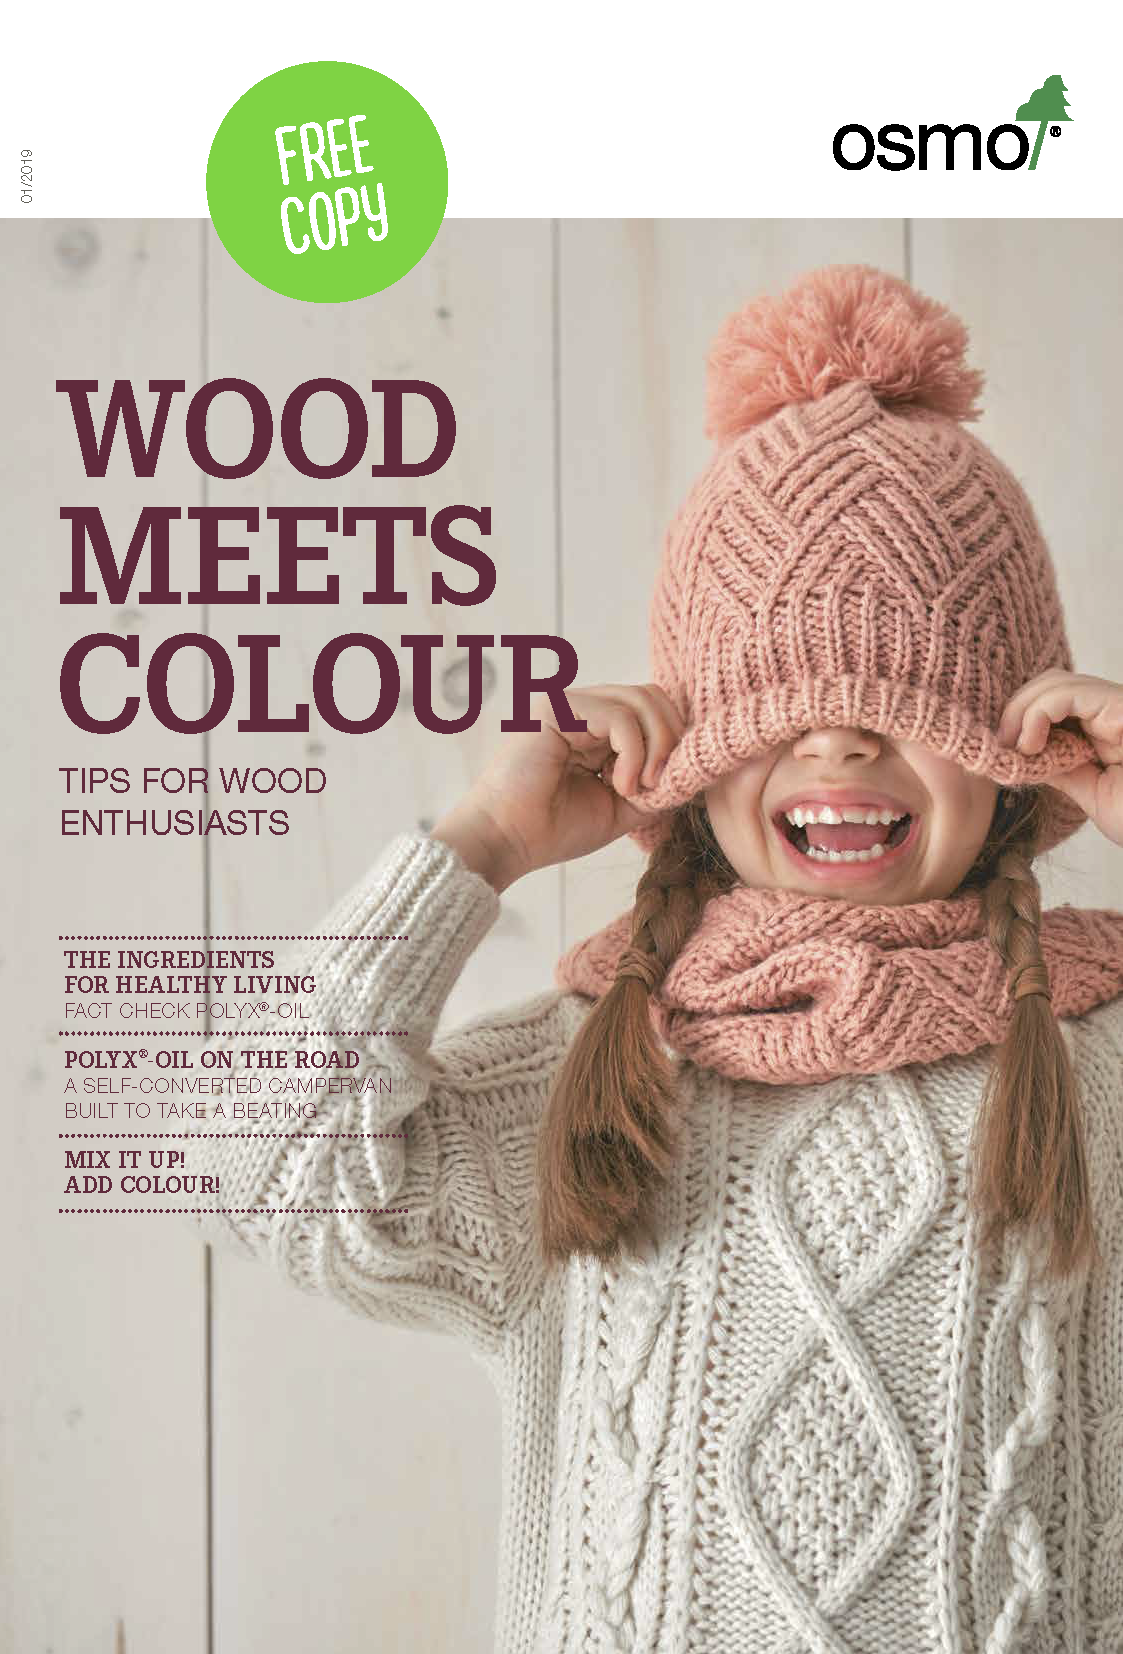 Wood Meets Colour cover image